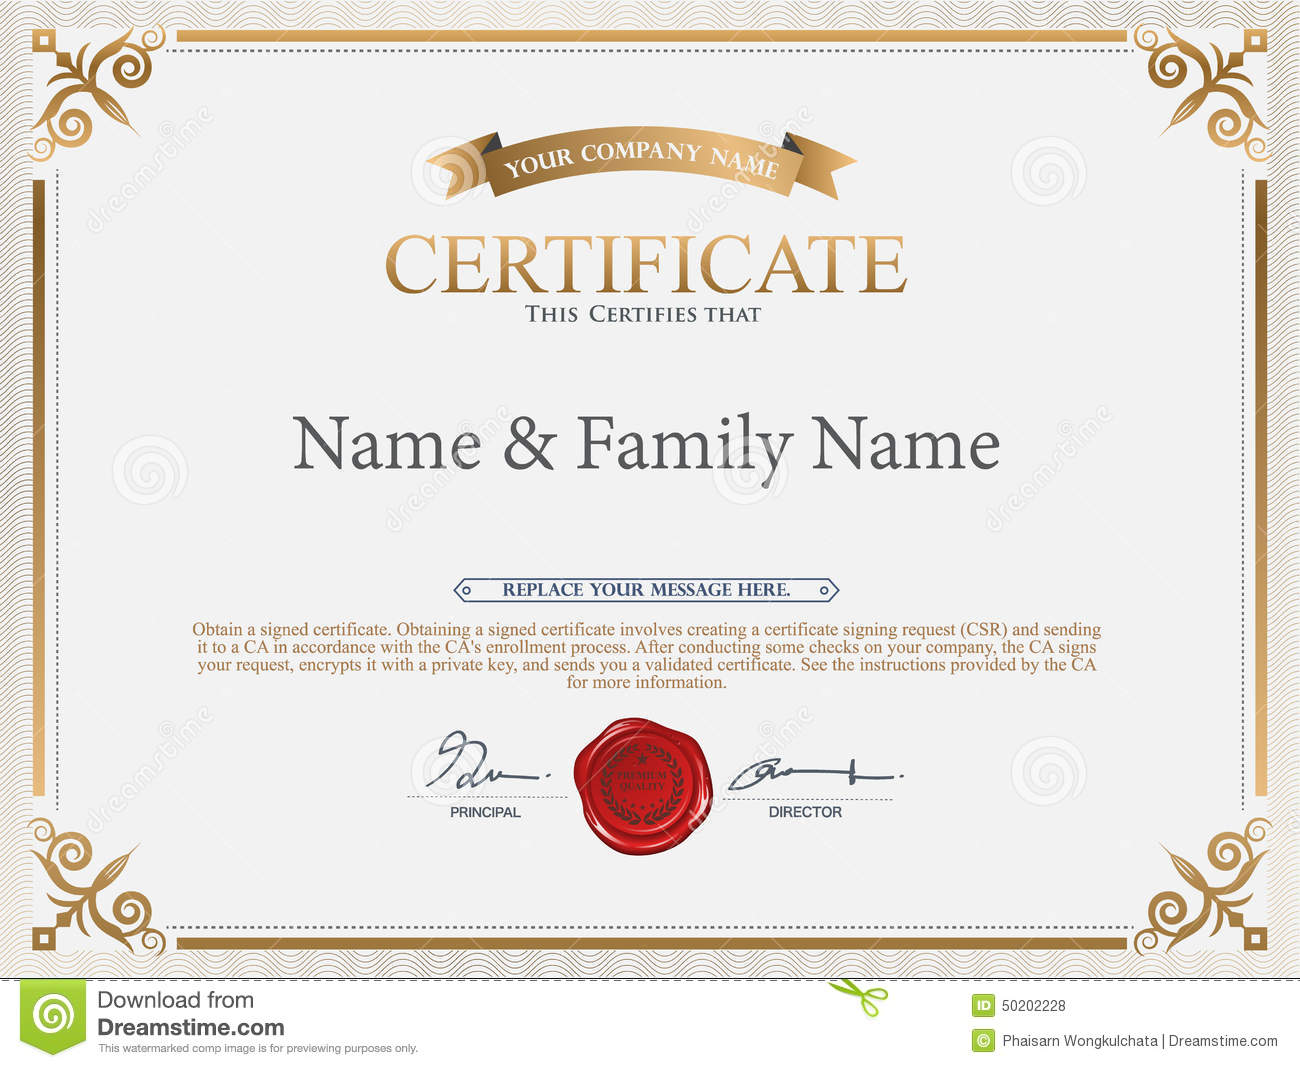 Divorce certificate template datariouruguay divorce certificate template yadclub Image collections